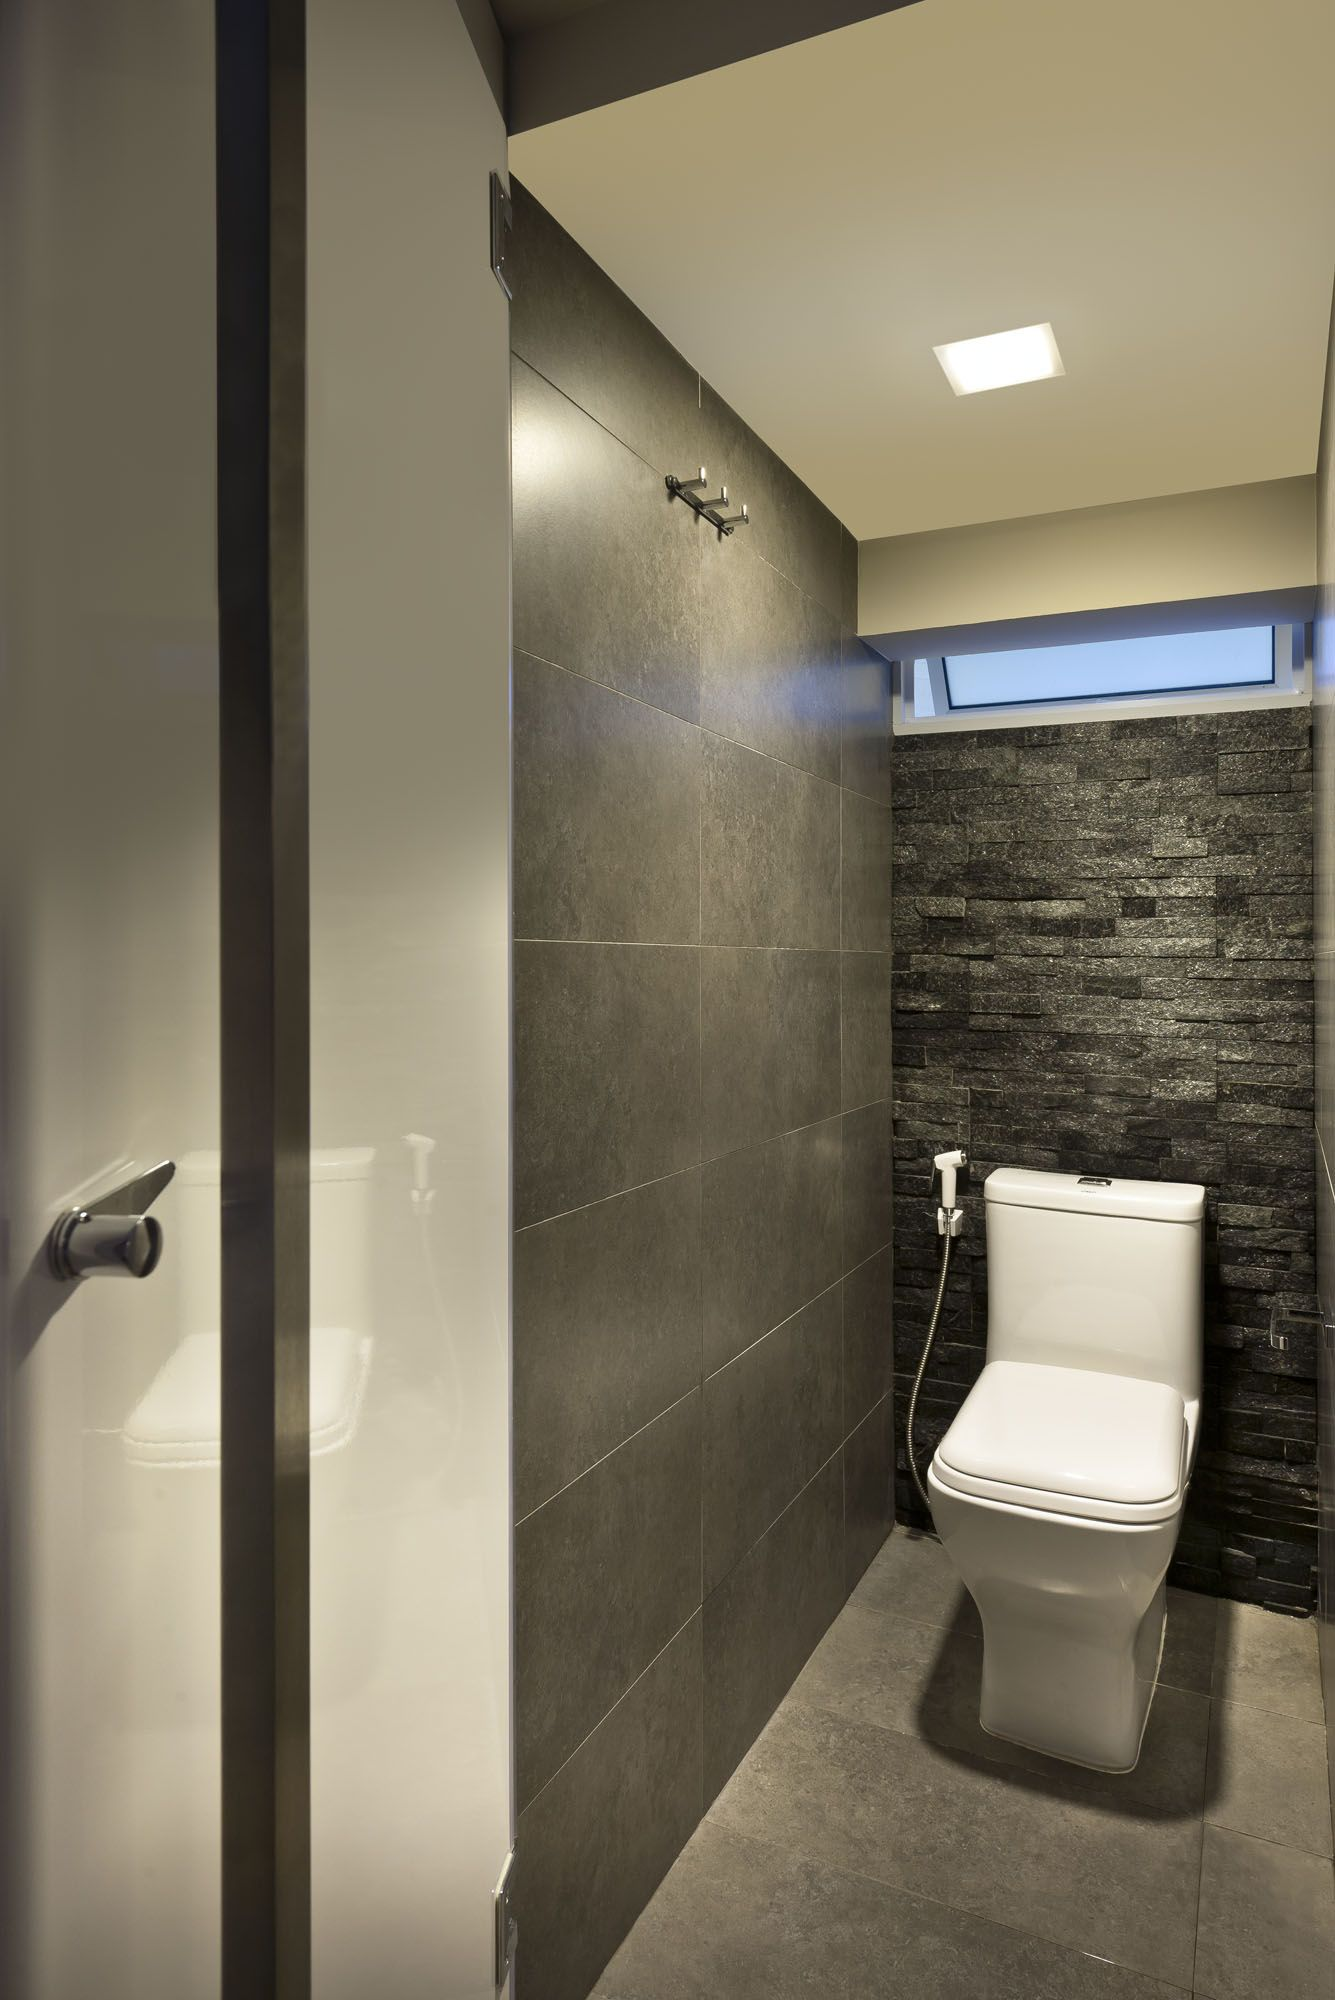 3 Room Hdb Interior Design Ideas: Bathroom Interior Design By Rezt 'n Relax Of